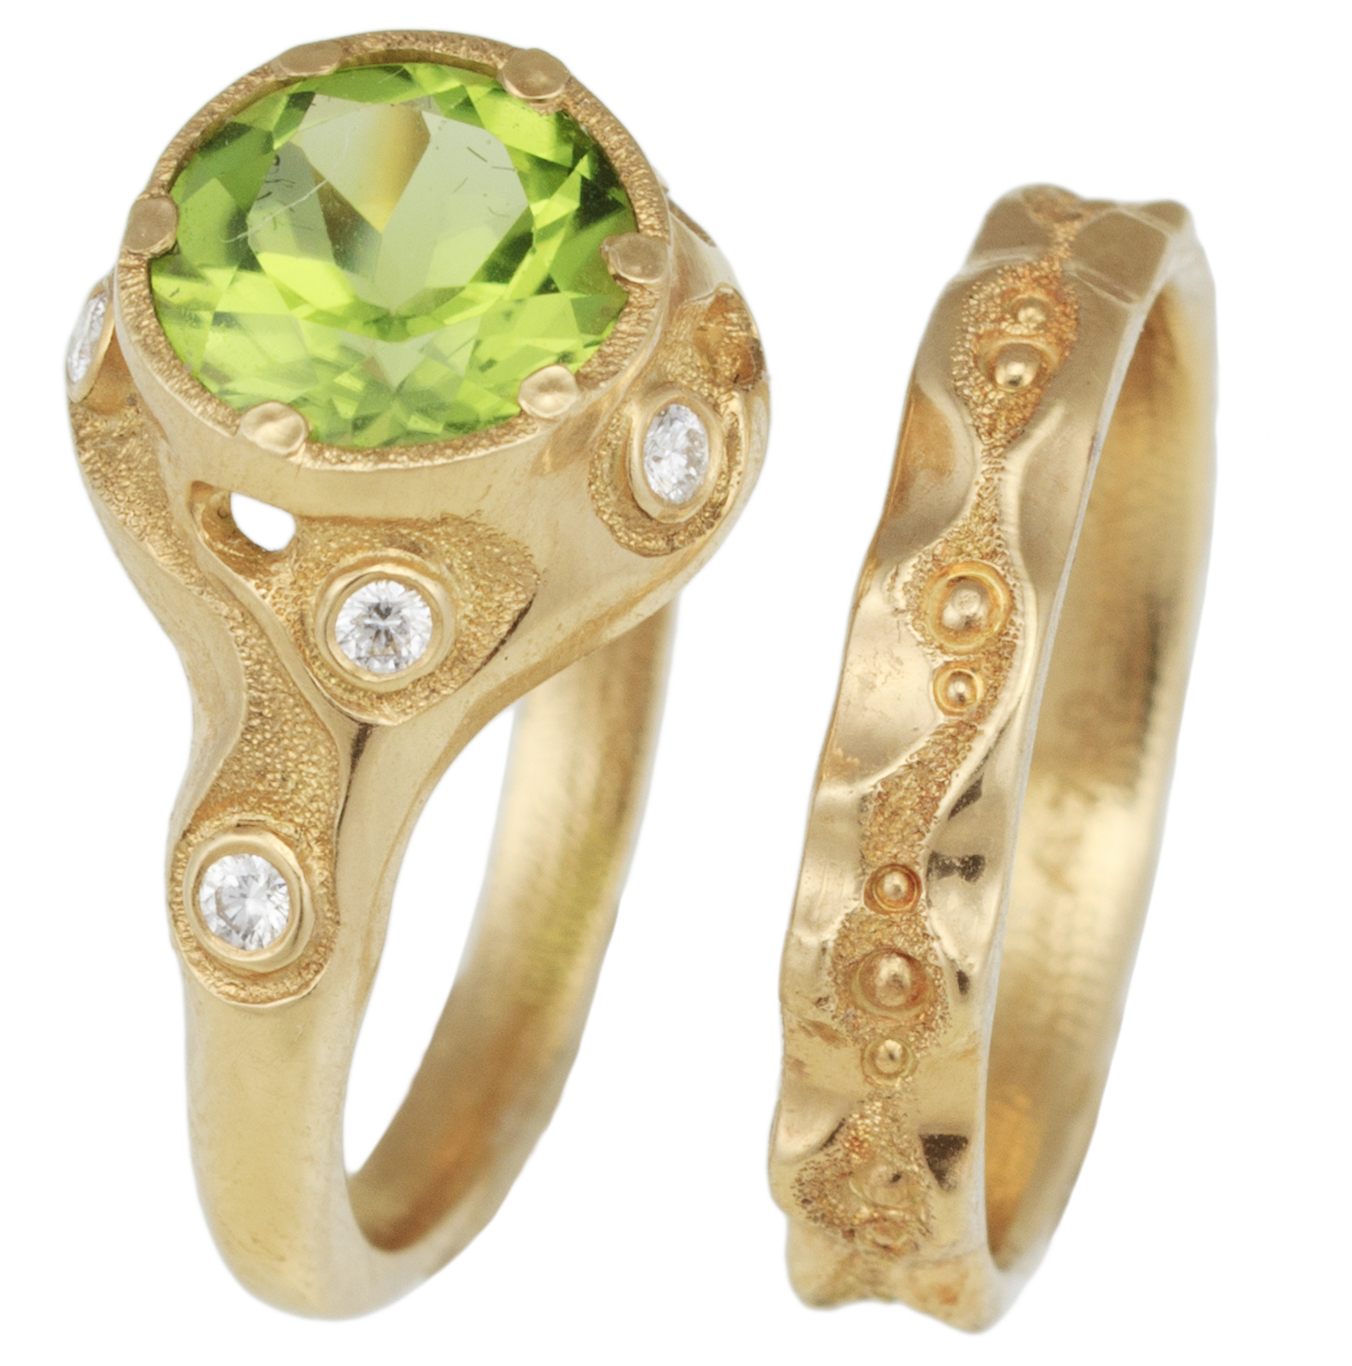 Audrius Krulis Swirling Brook peridot bridal set | JCK On Your Market